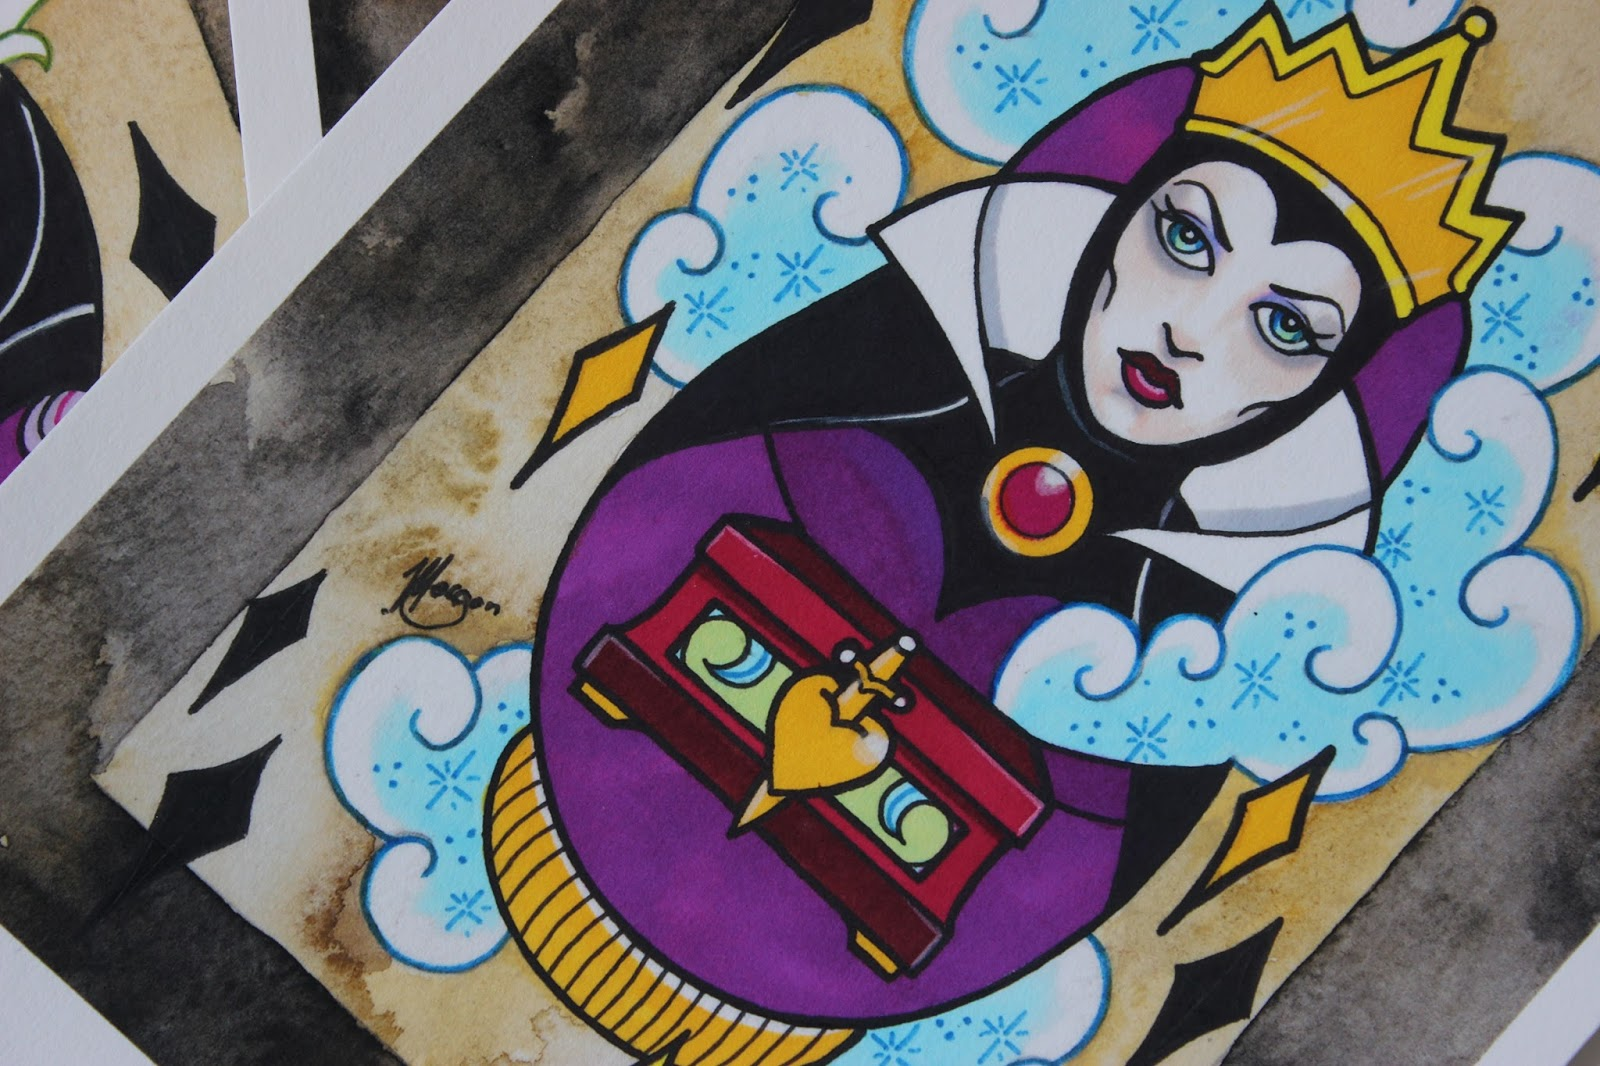 A picture of Disney Villain The Evil Queen by Vicky Morgan